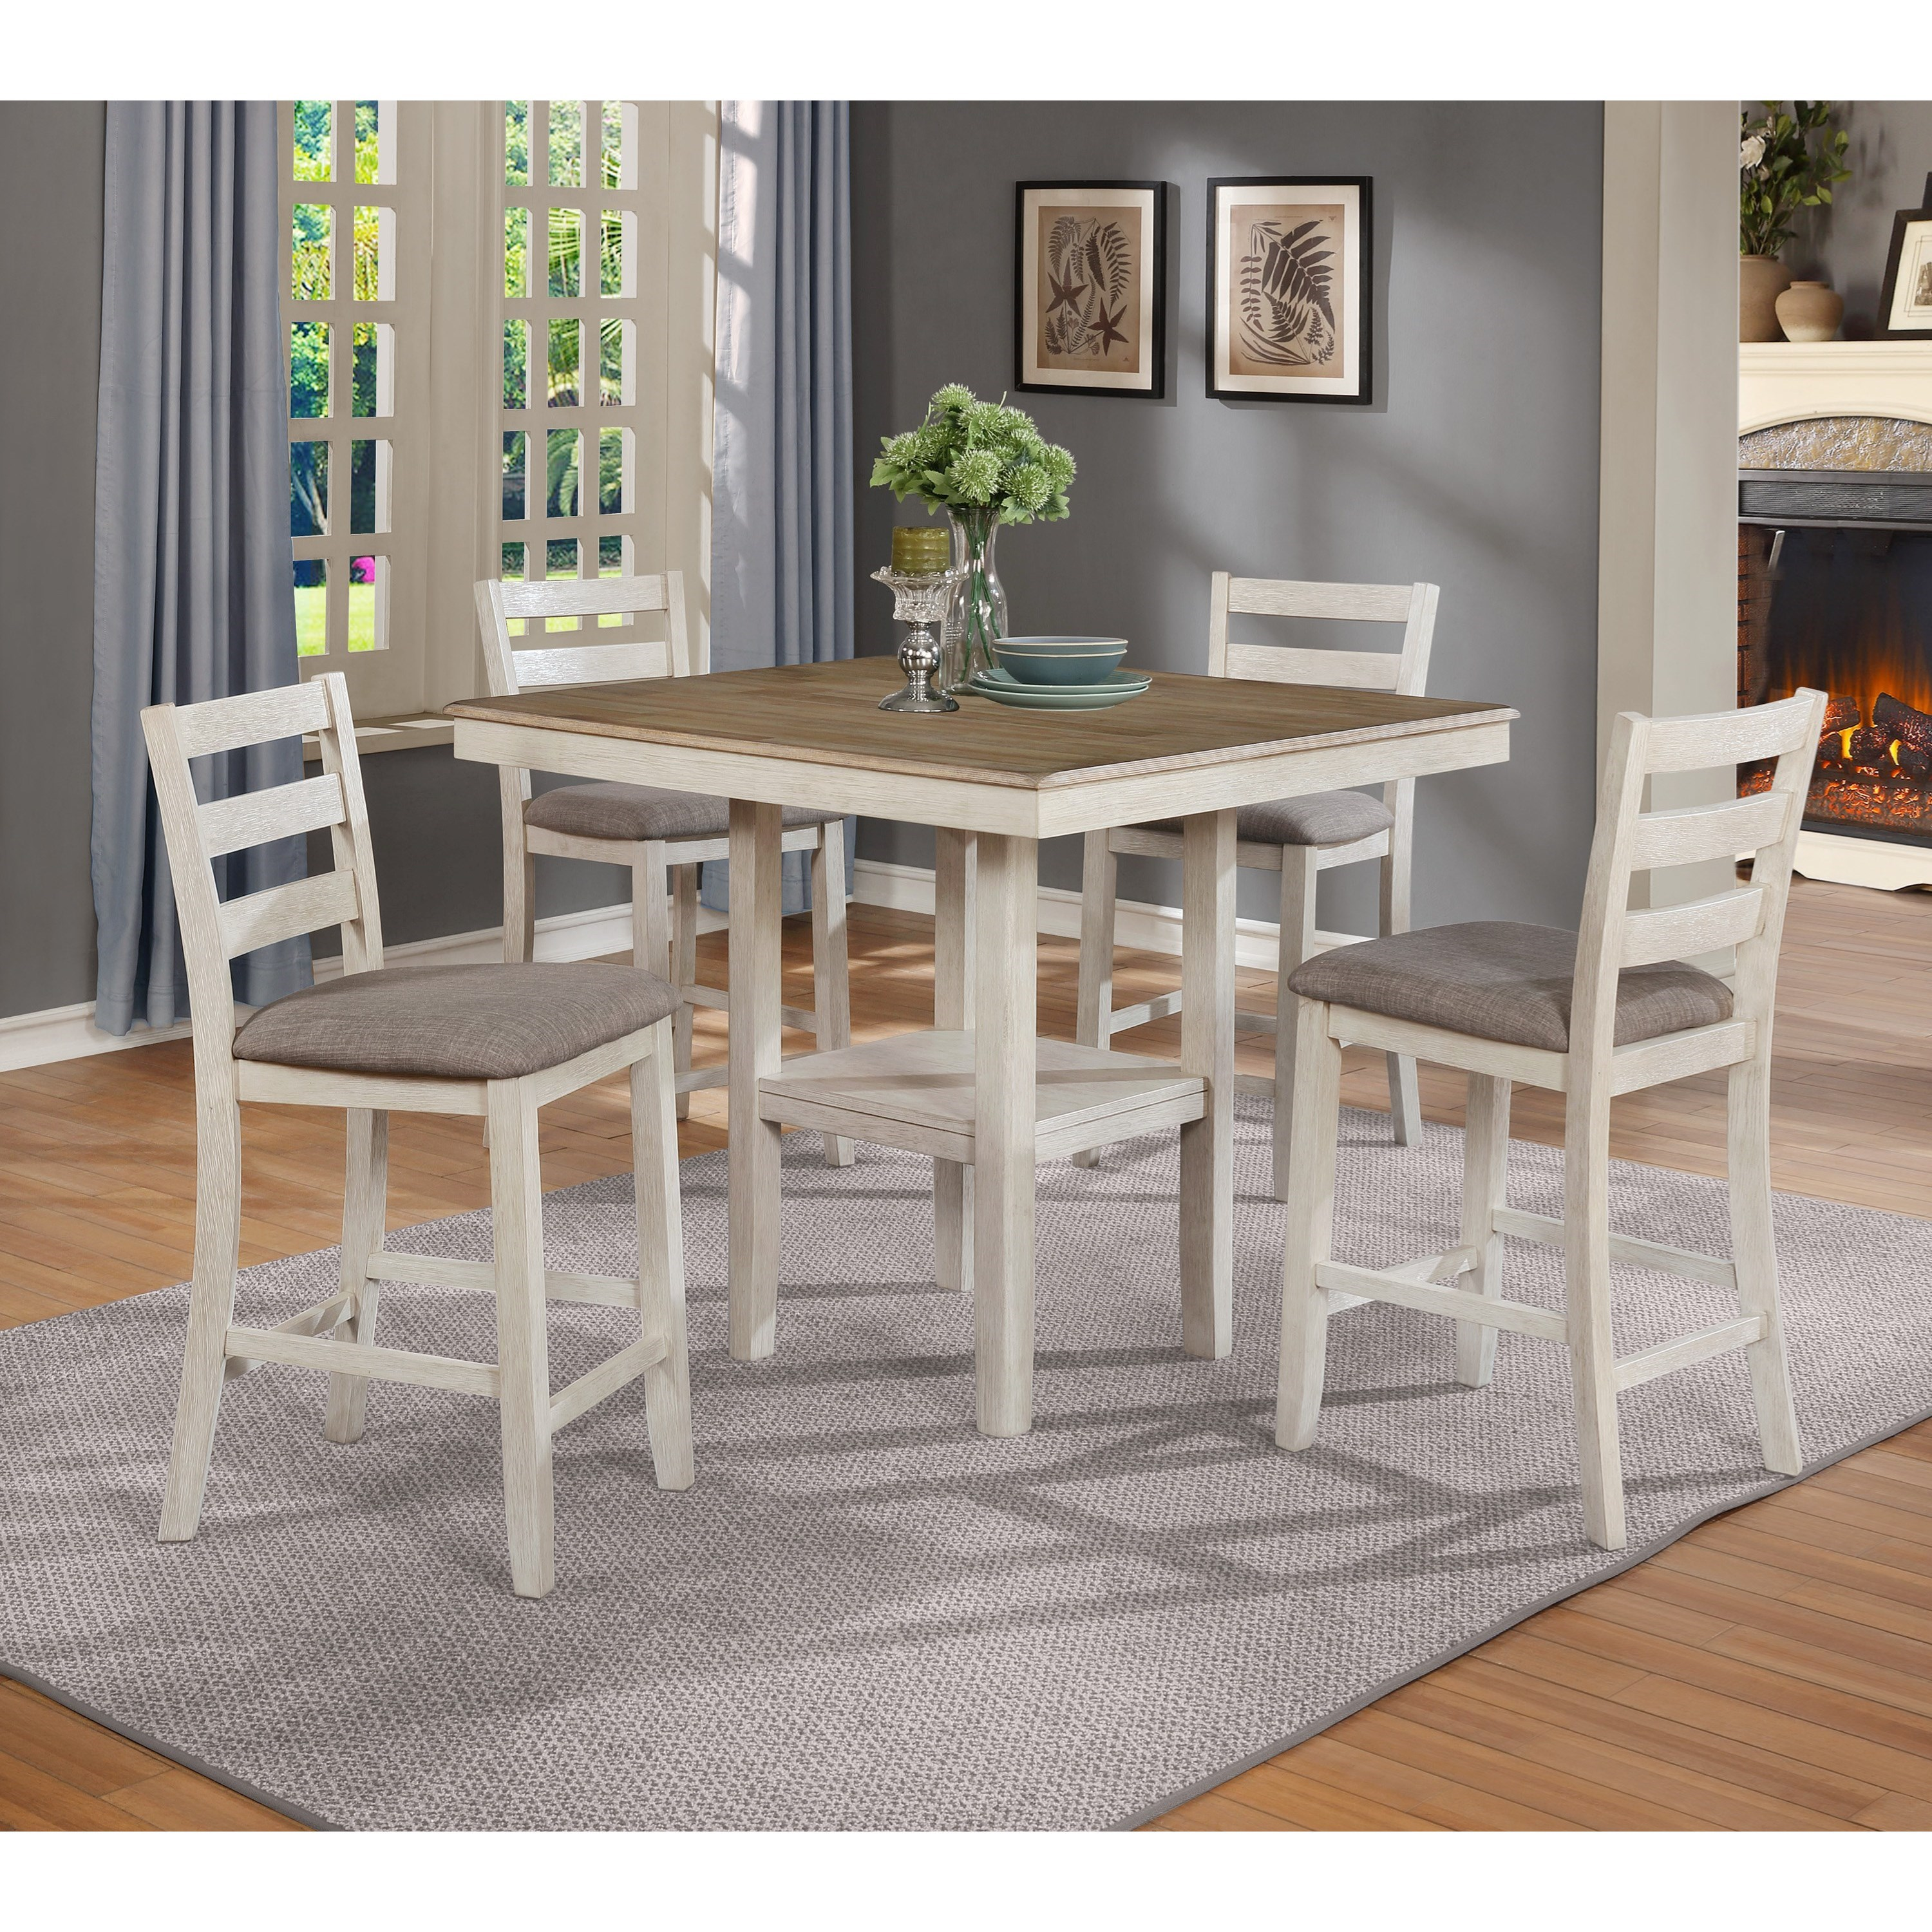 White / Sable 5 Piece Counter Height Table and Chairs Set at Rotmans